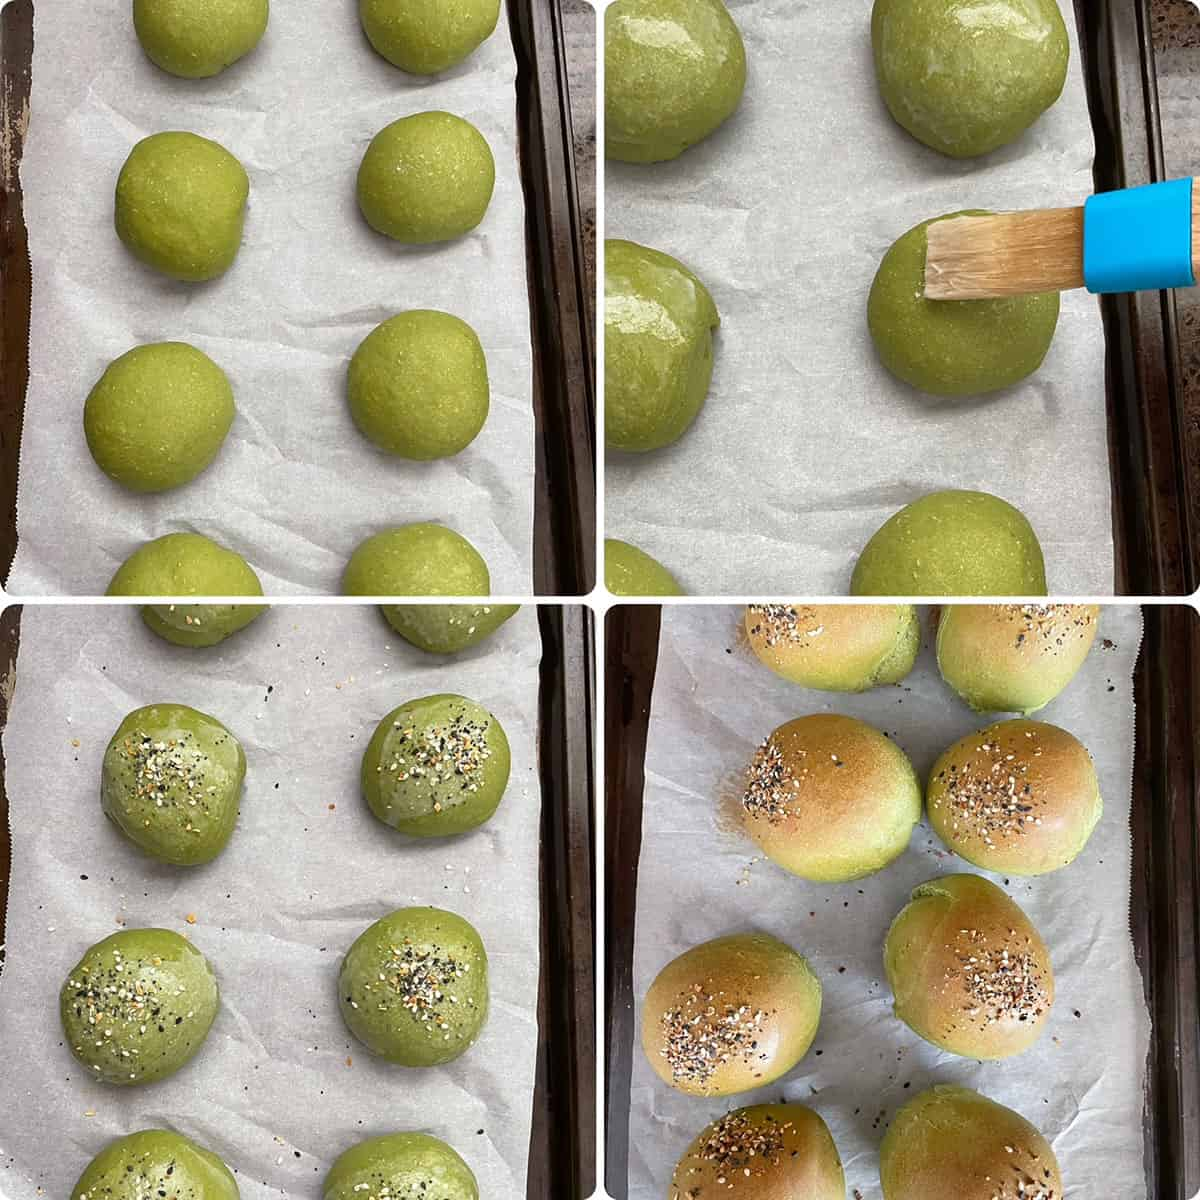 Spinach buns placed on baking sheet, brushed with milk, topped with seeds and baked until golden